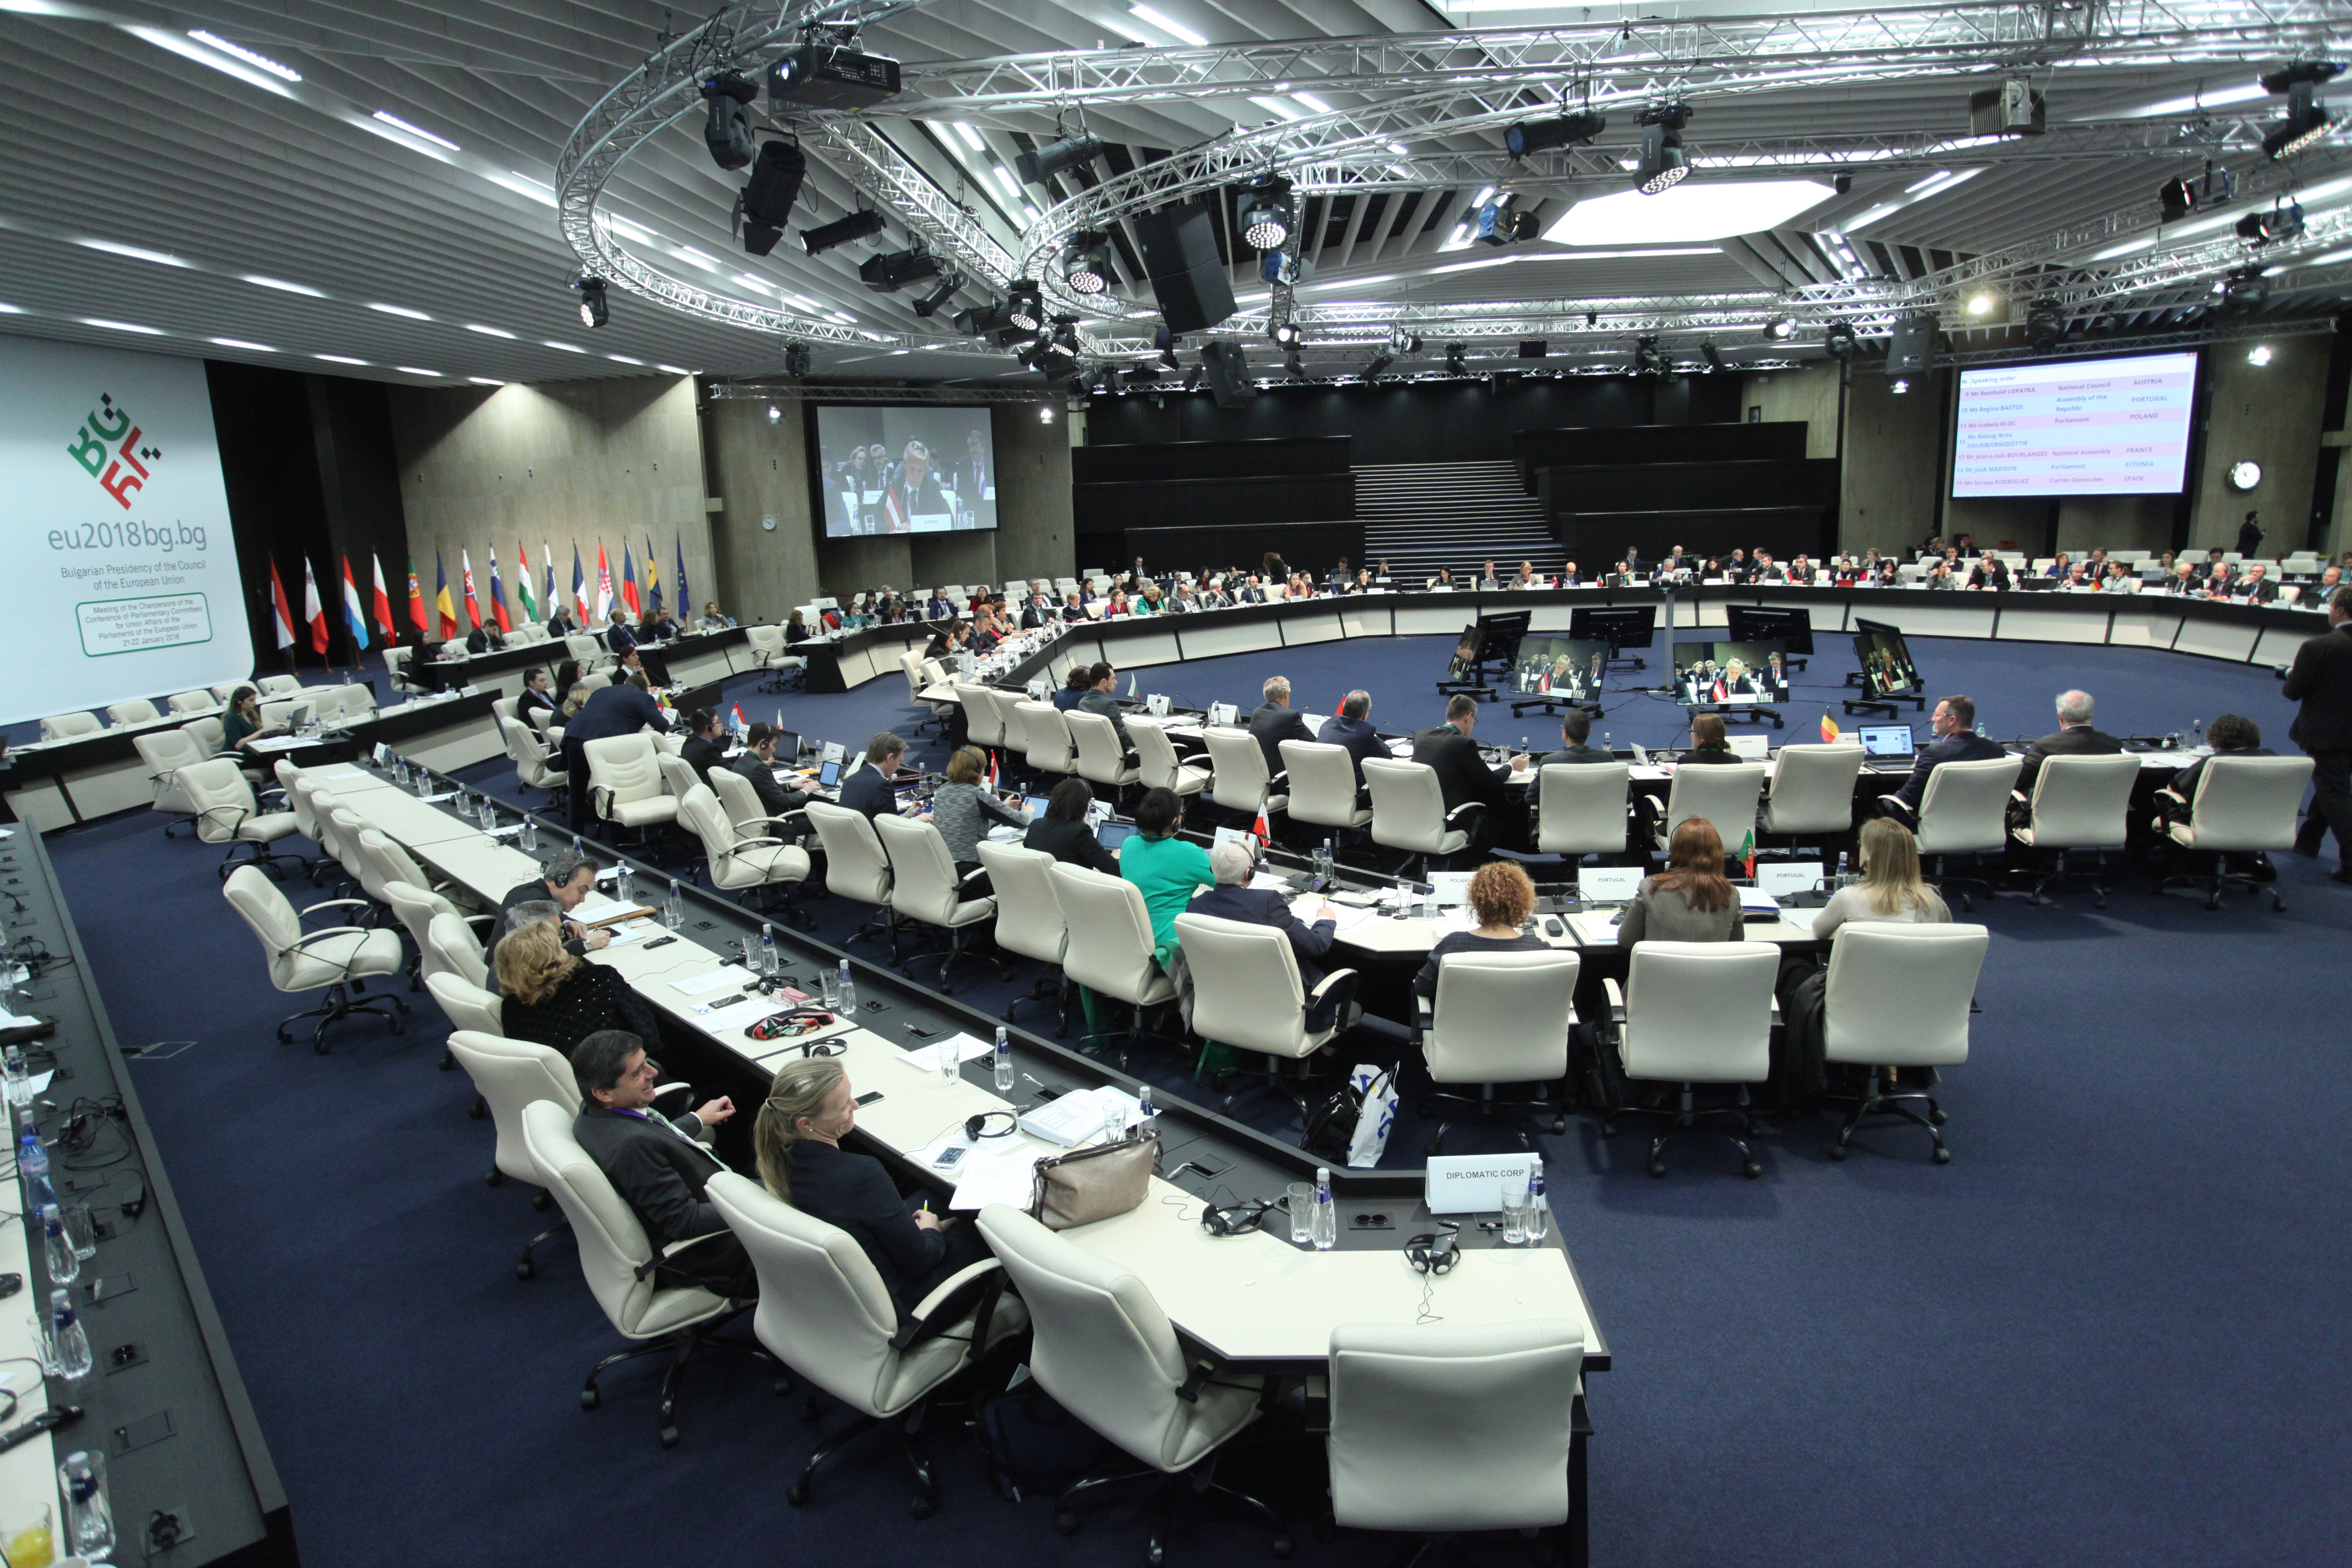 The role of European macro-regional strategies for sustainable development, security and stability has been discussed by the chairpersons of the Committees for Union Affairs of the Parliaments of the European Union in Sofia